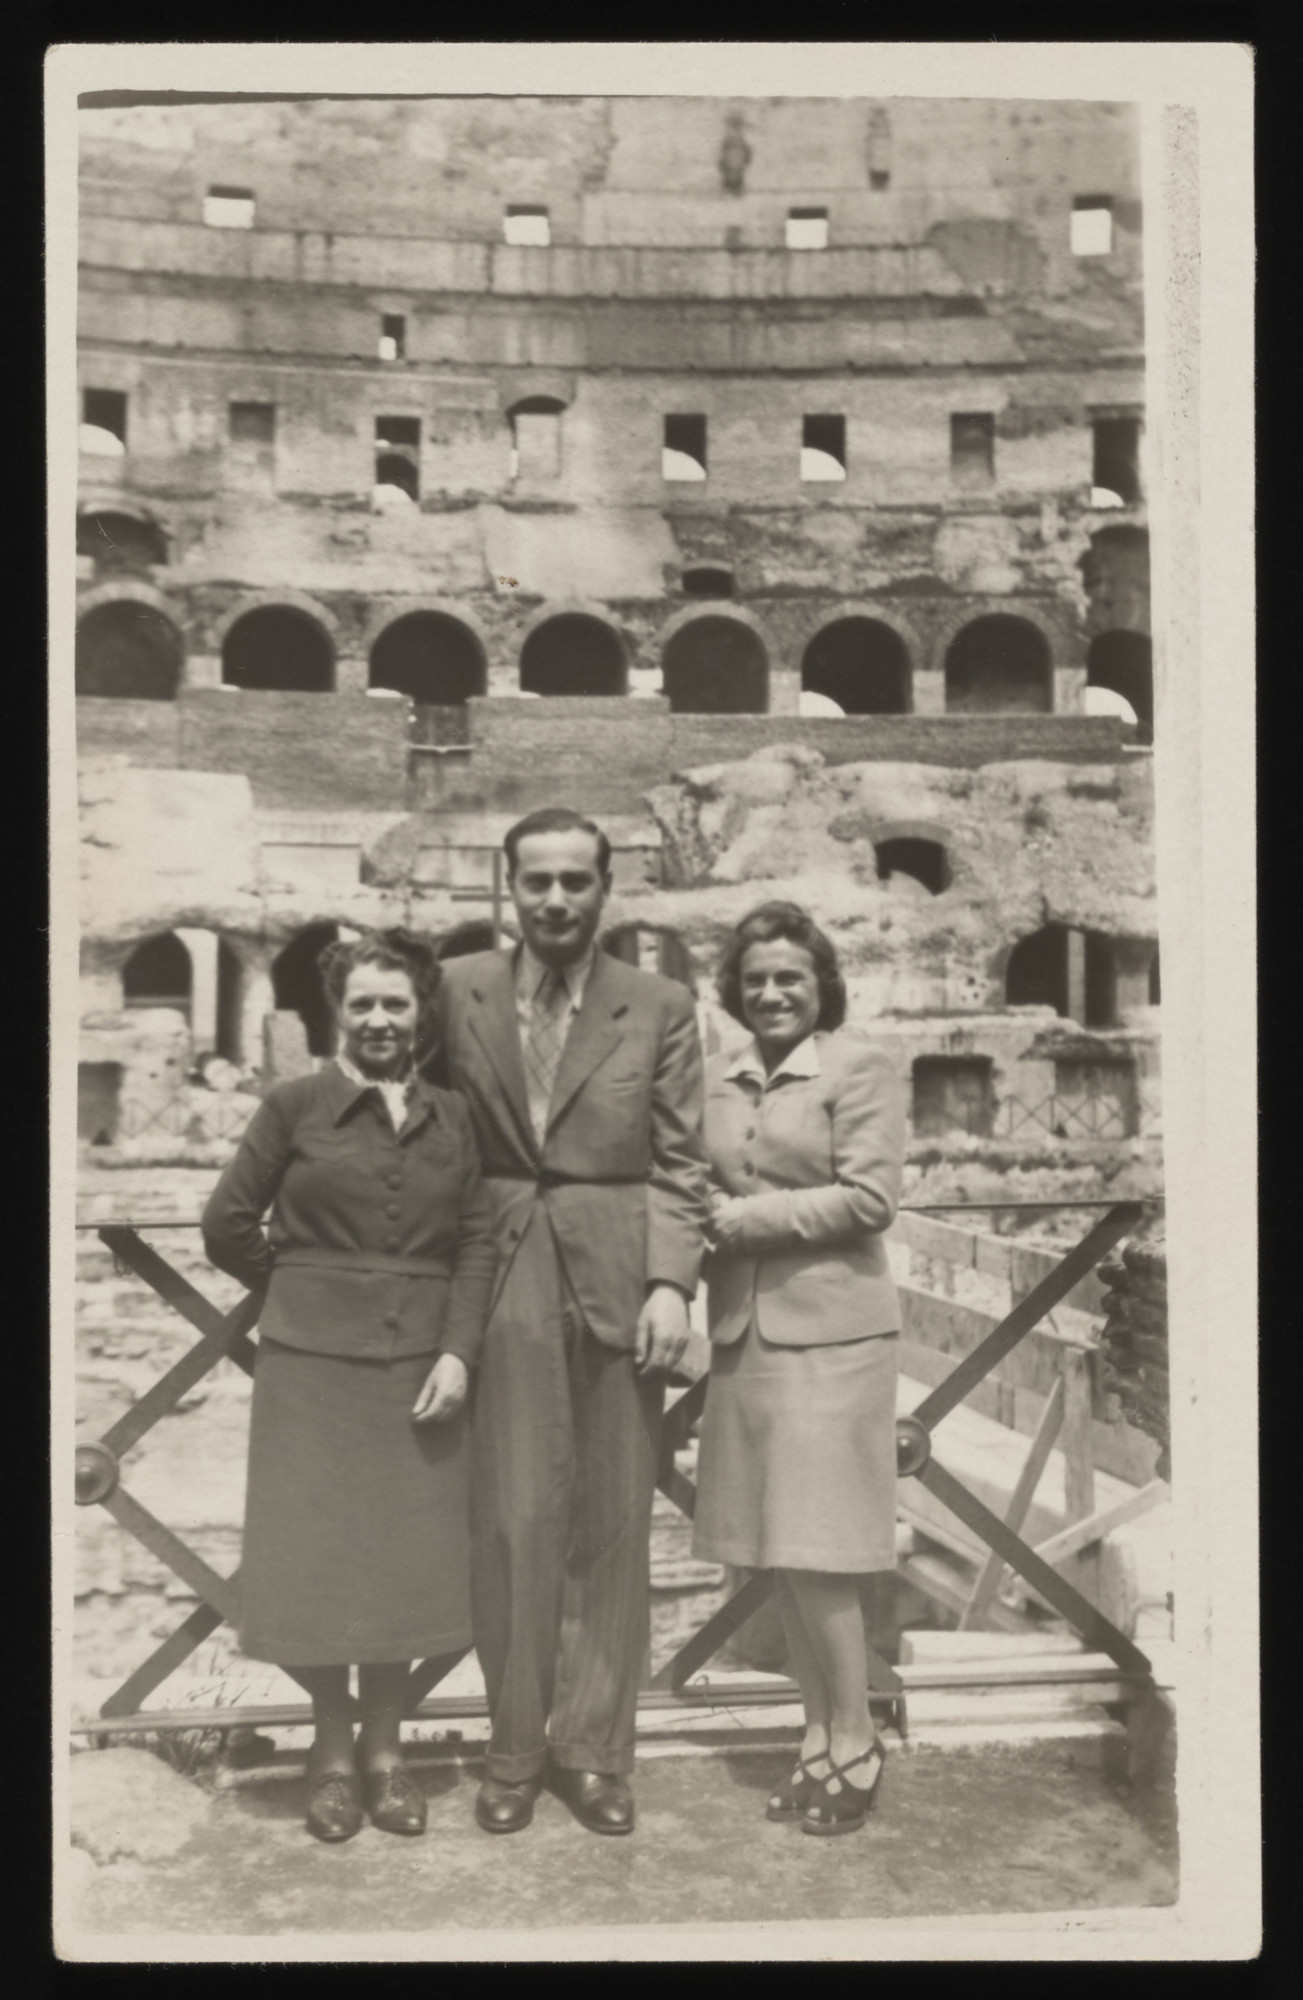 Ittla Gella Asz (left), her son-in-law, Jerzy Szrut and an unidentified woman stand in front of the Colosseum in Rome.